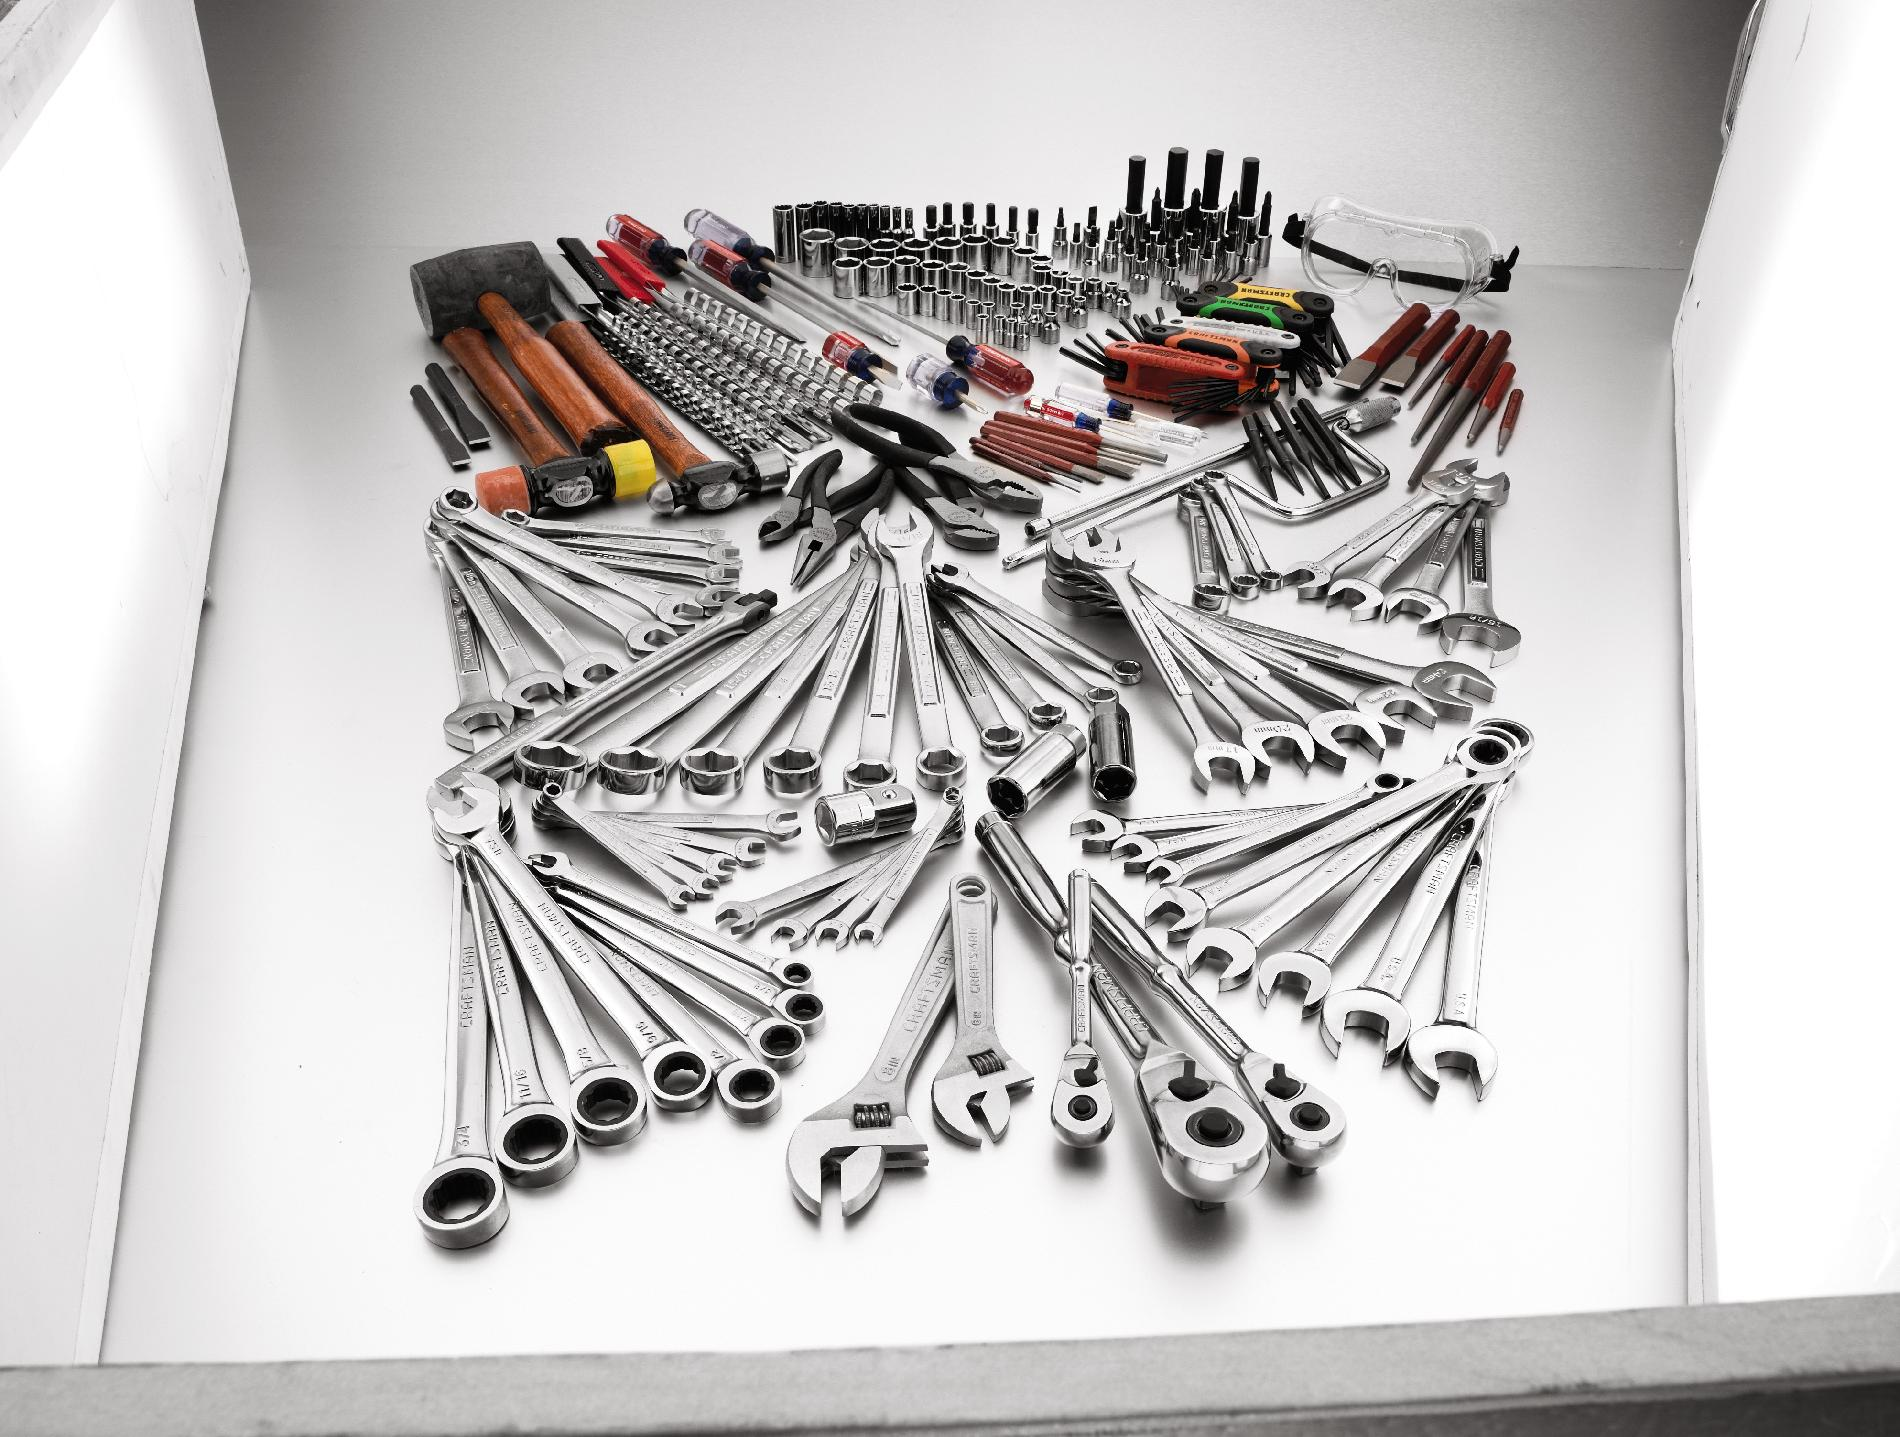 Craftsman 197pc Expansion Pro Mechanics Tool Set